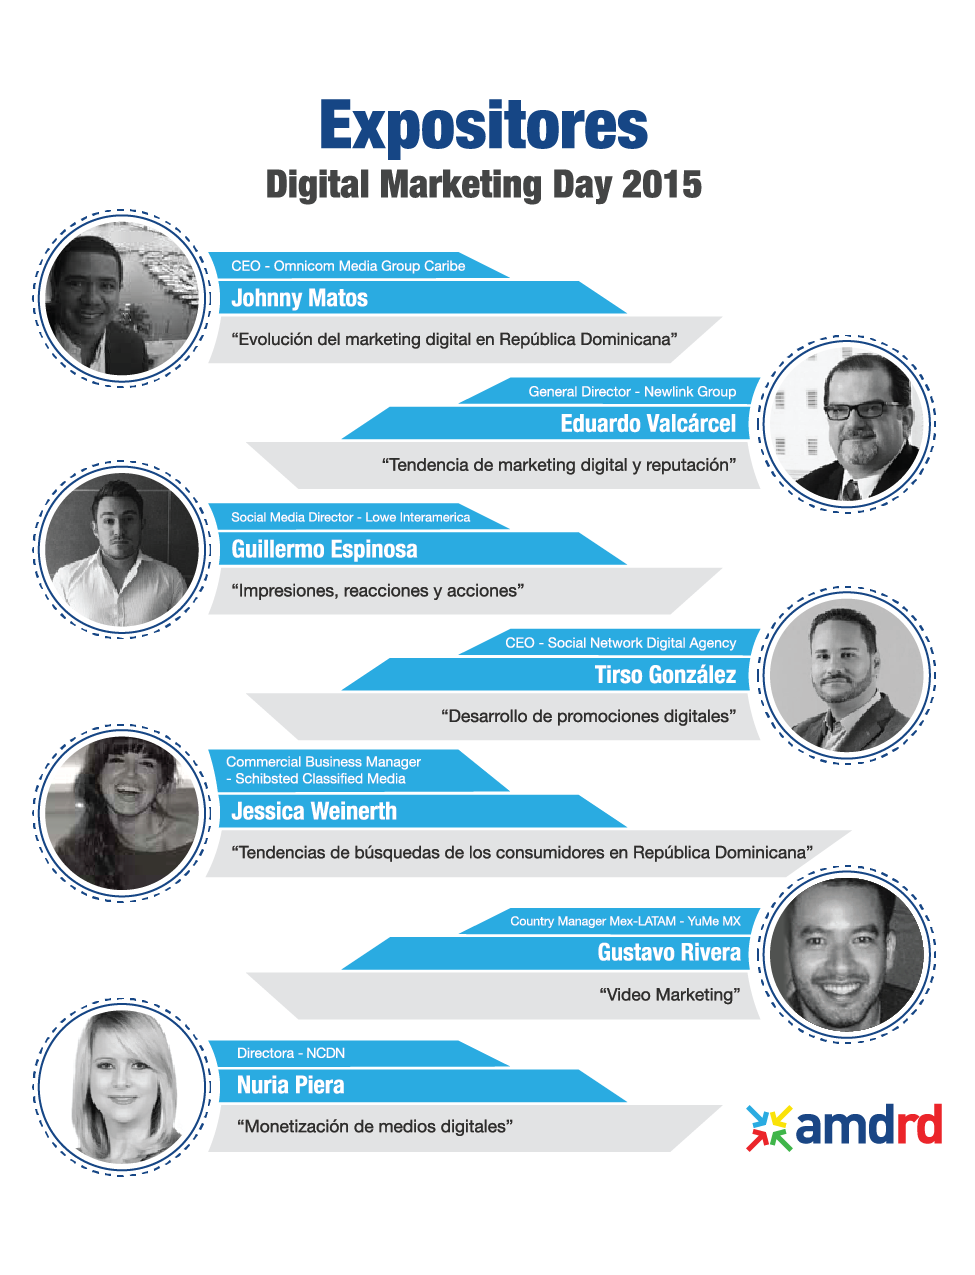 Expositores Digital Marketing Day